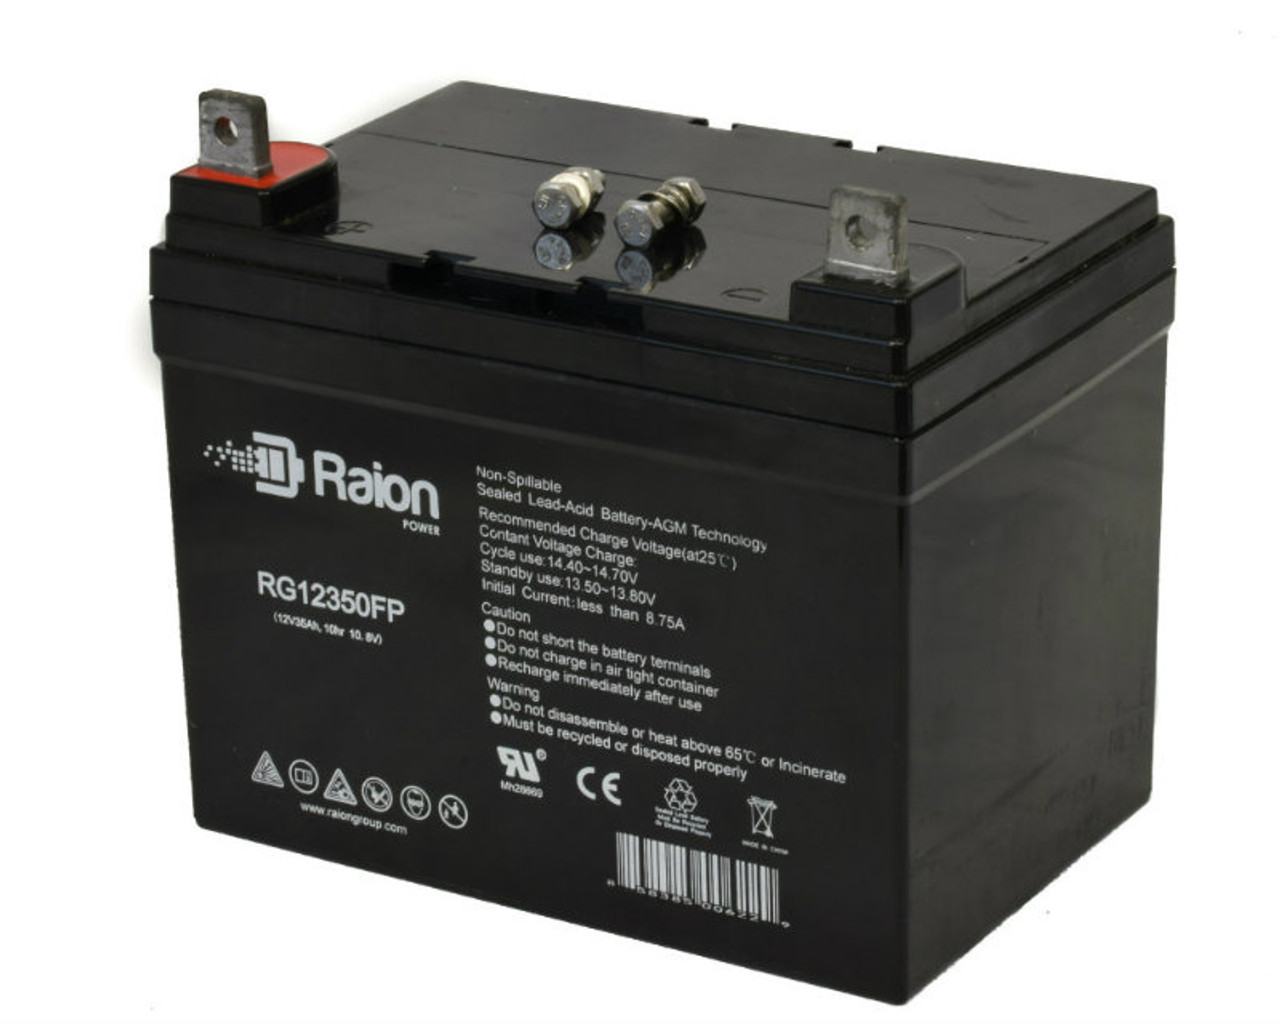 RG12350FP Sealed Lead Acid Battery Pack For Golden Technology Alero 16 Inch Mobility Scooter